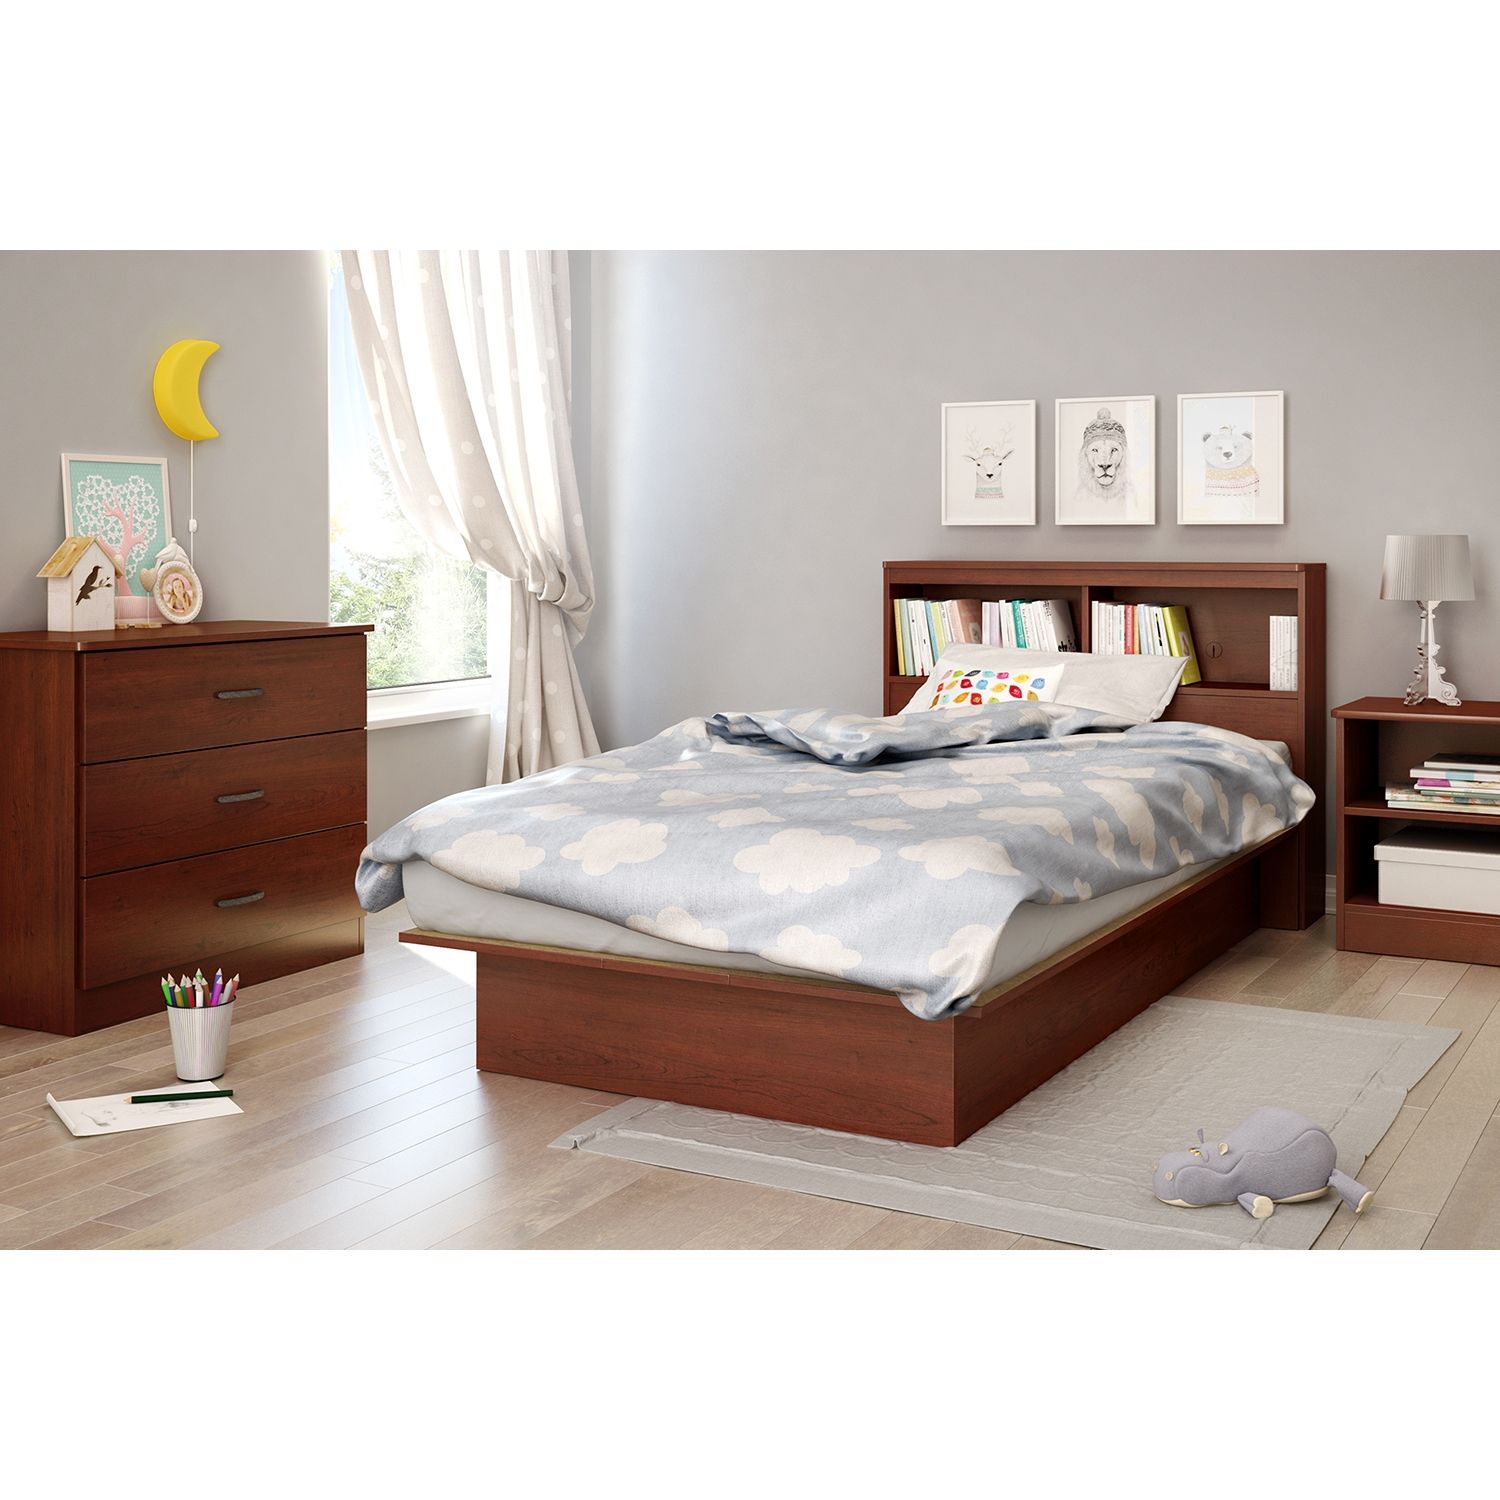 Libra Twin Platform Bed - Bookcase Headboard, Royal Cherry - SS-10044